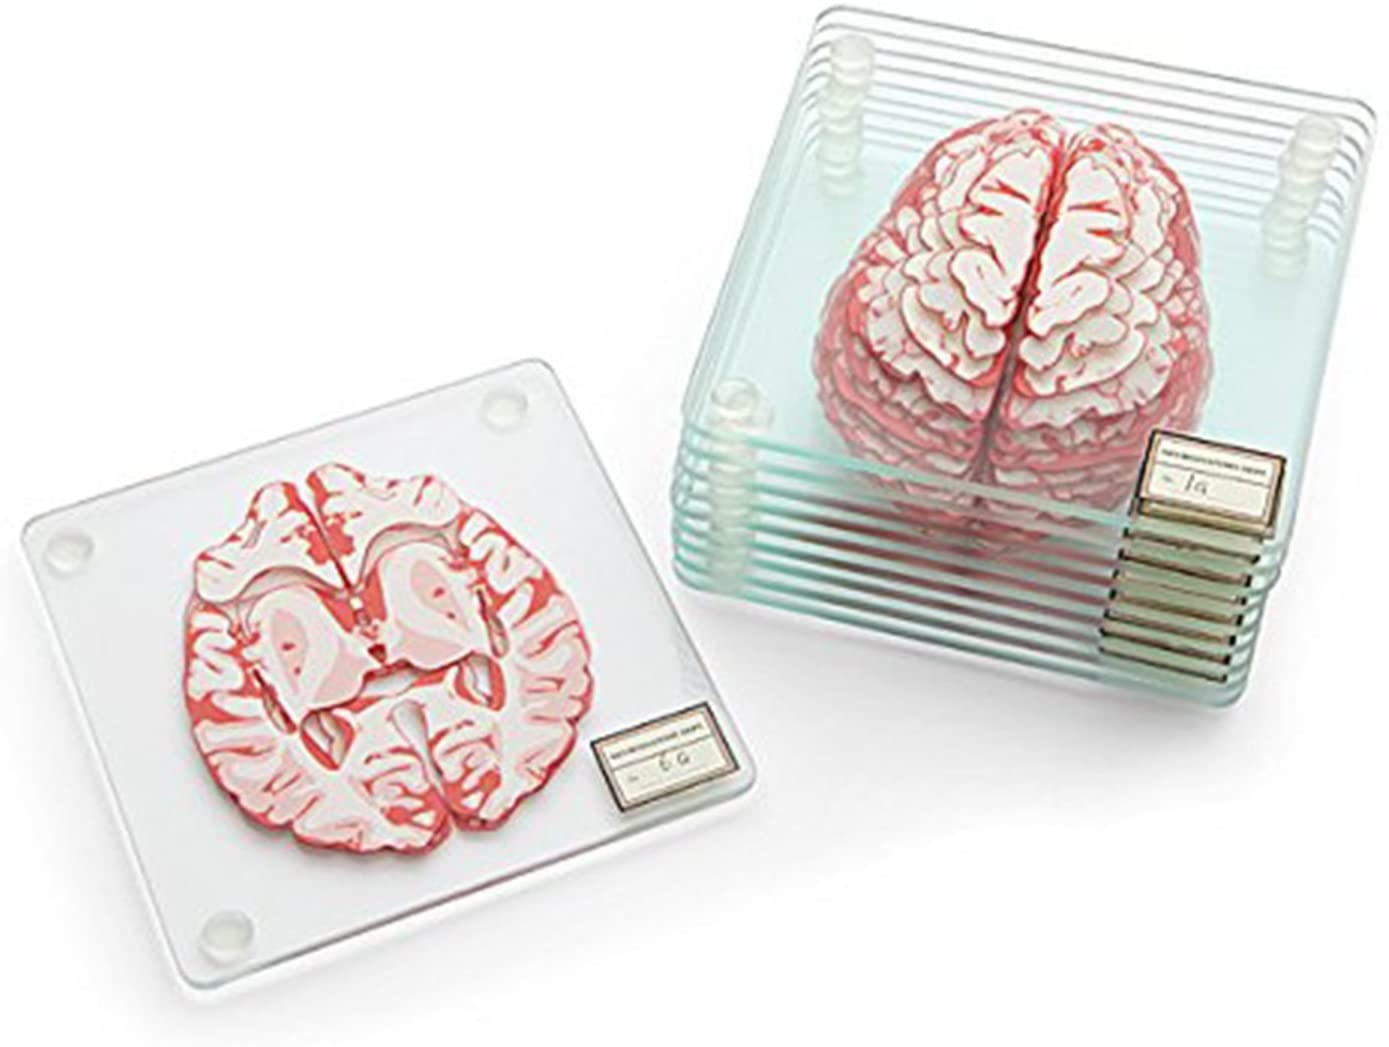 science-gifts-brain-coasters